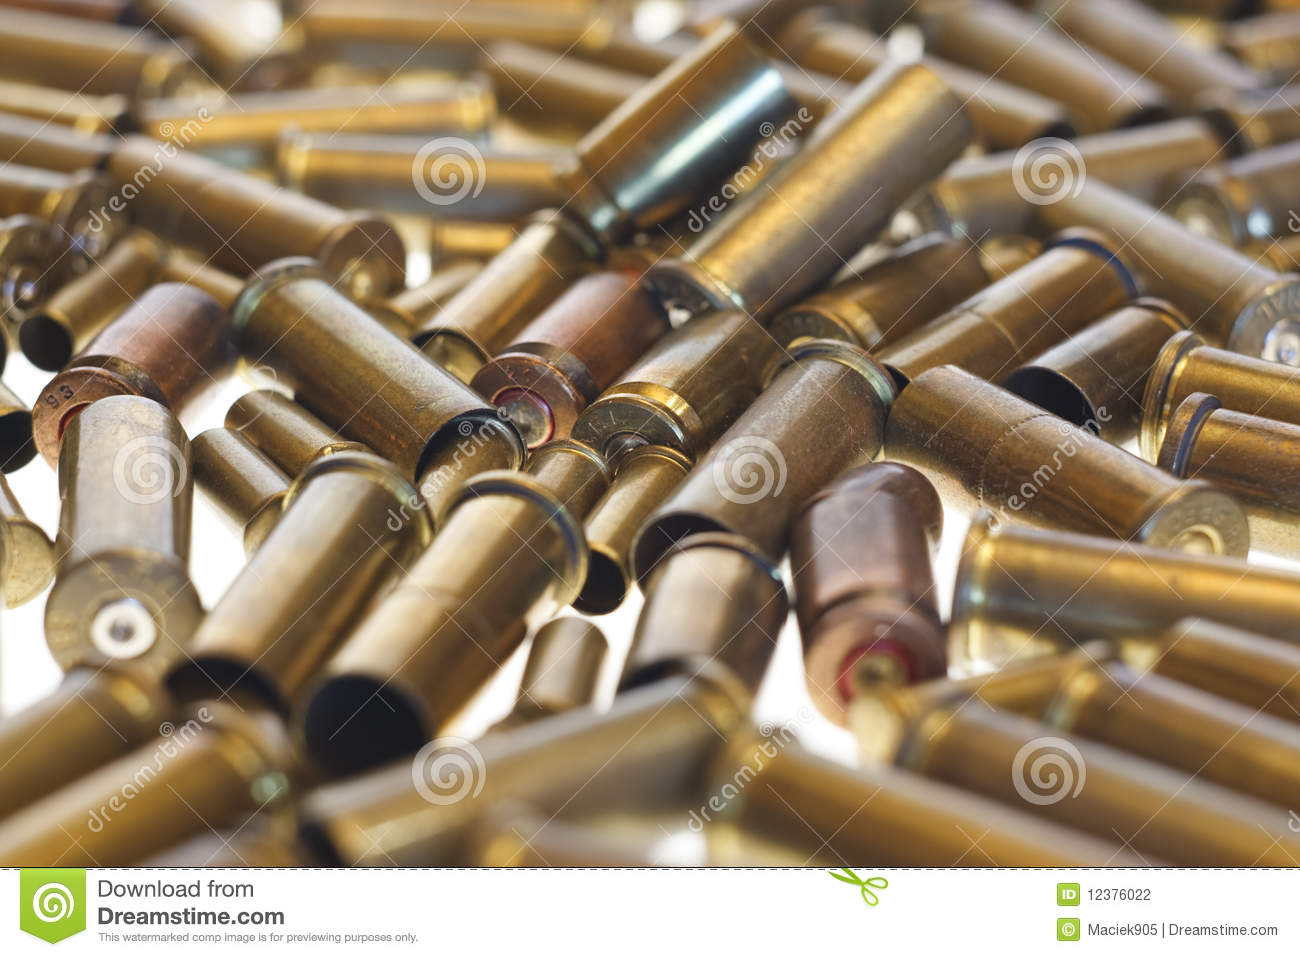 Used empty old bullet cartridges